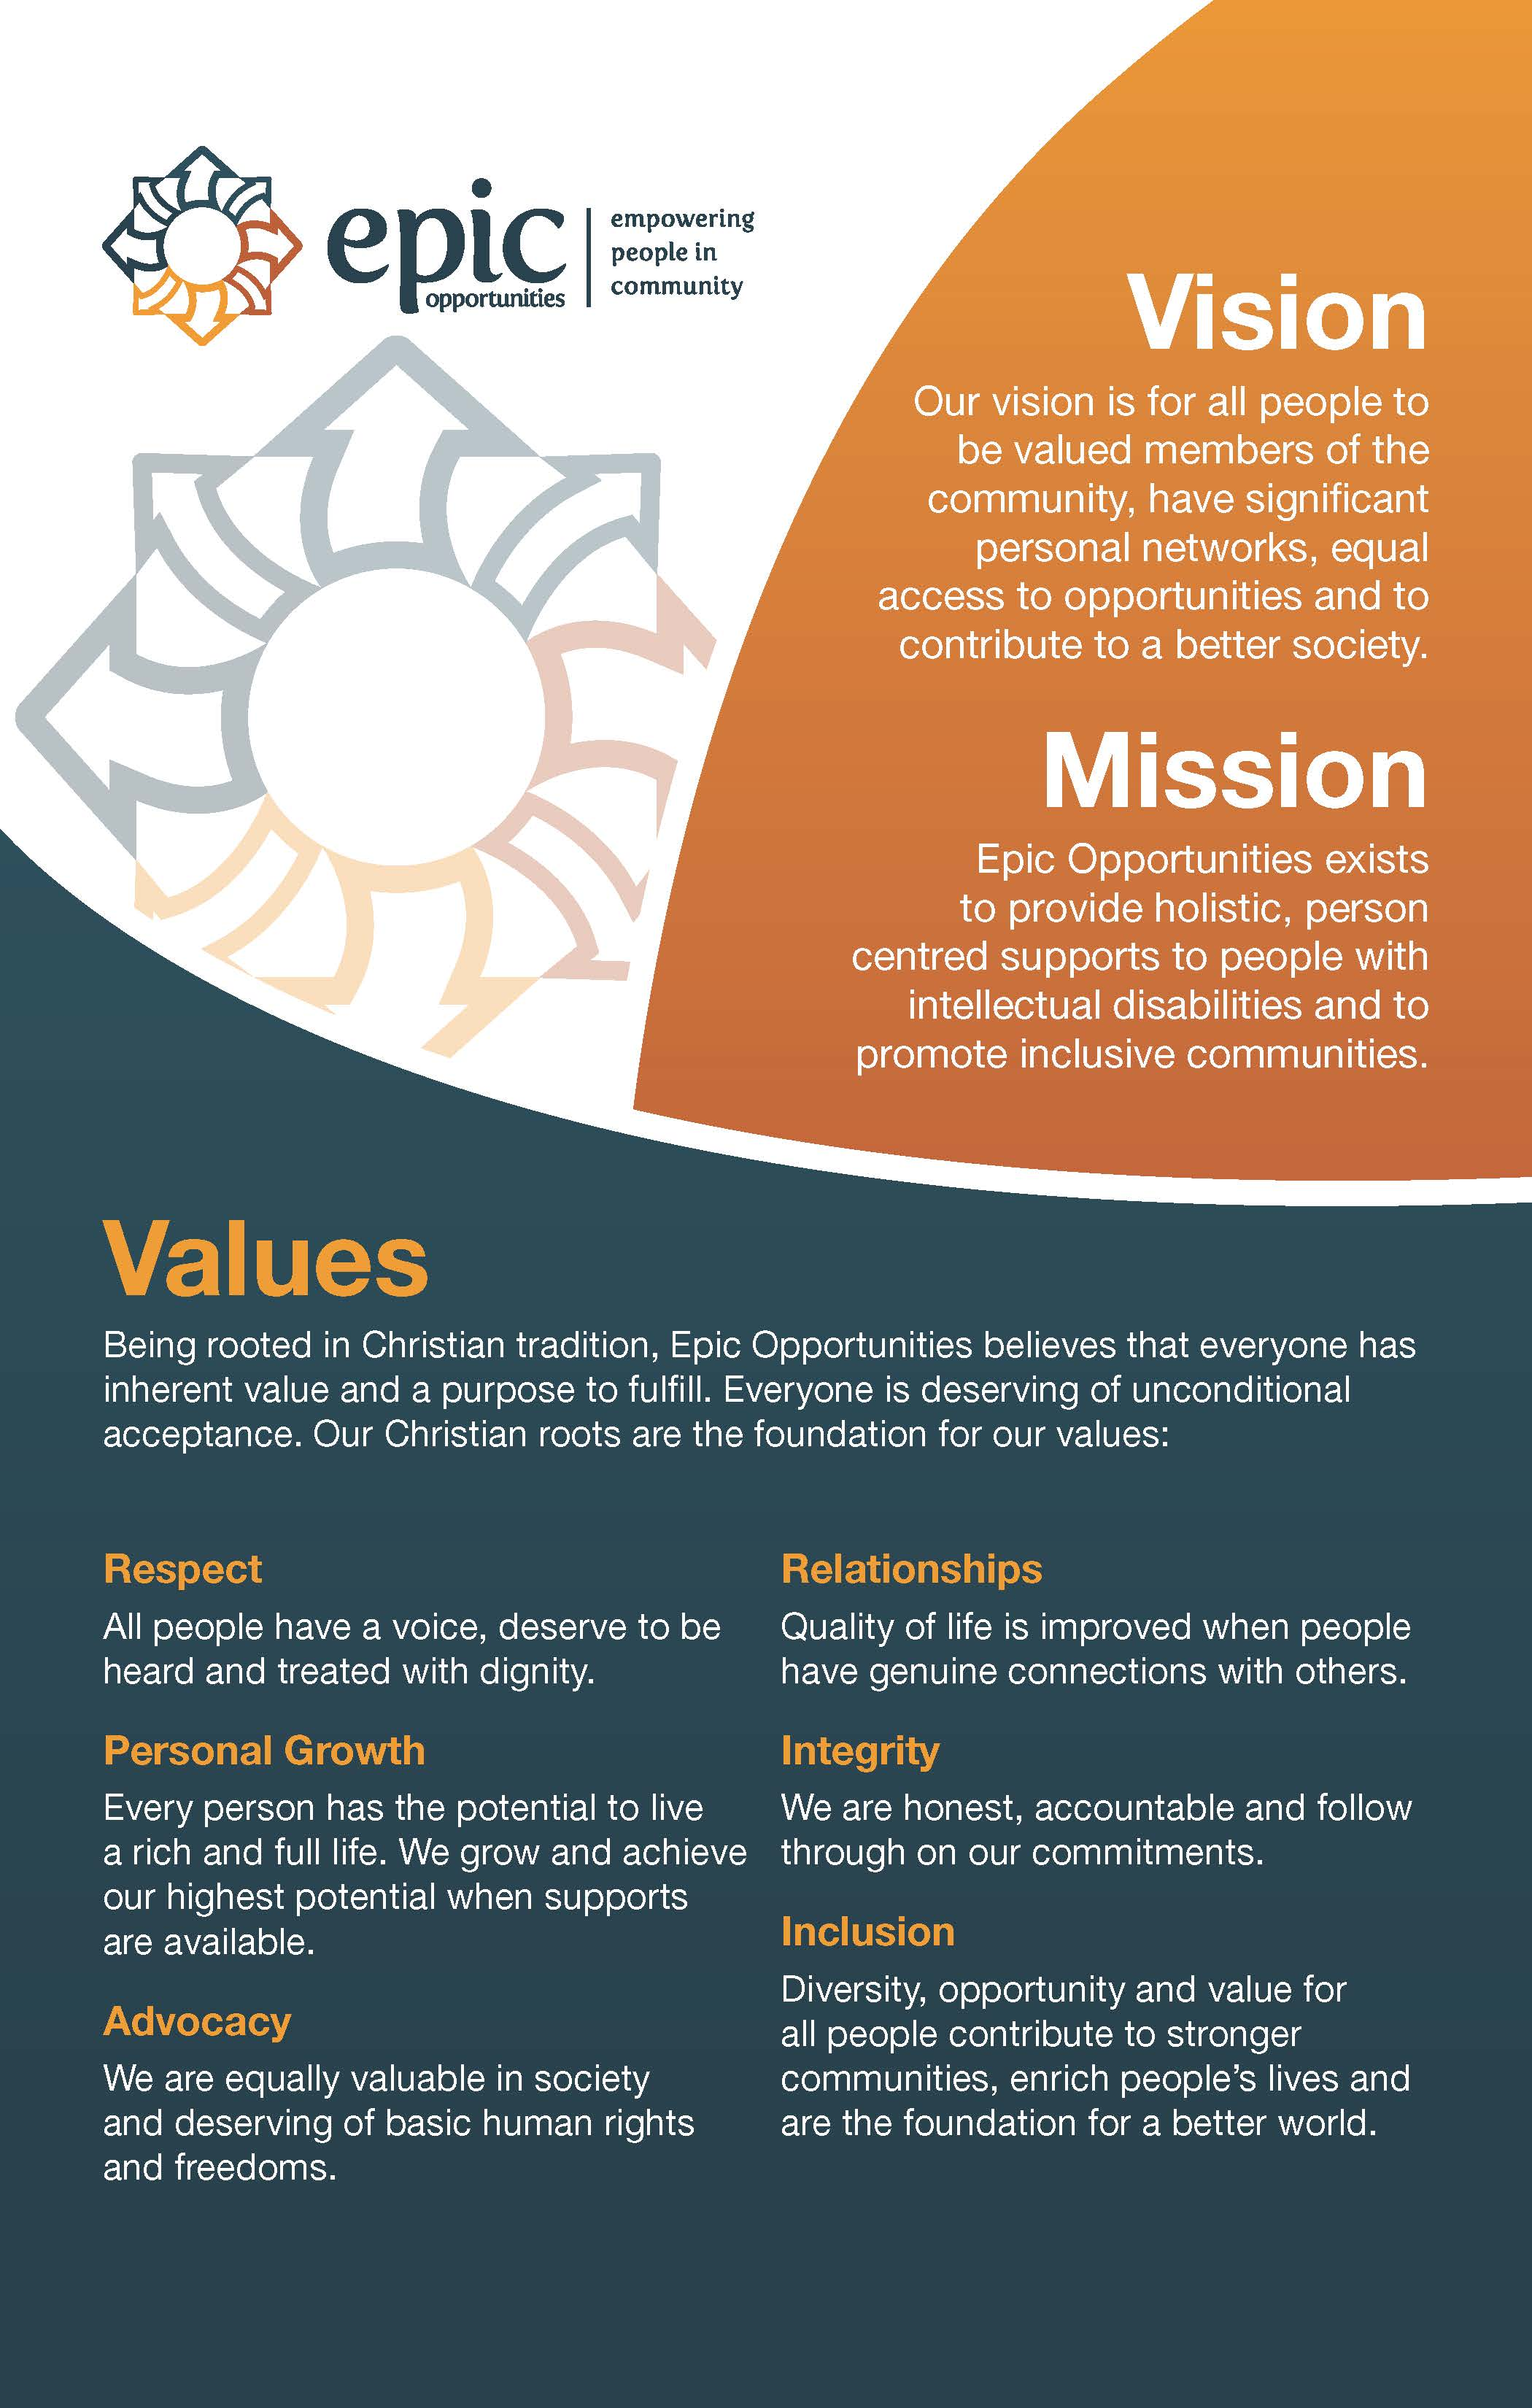 Image is a poster of Epic Opportunities Vision, Mission and Values as described on the webpage.